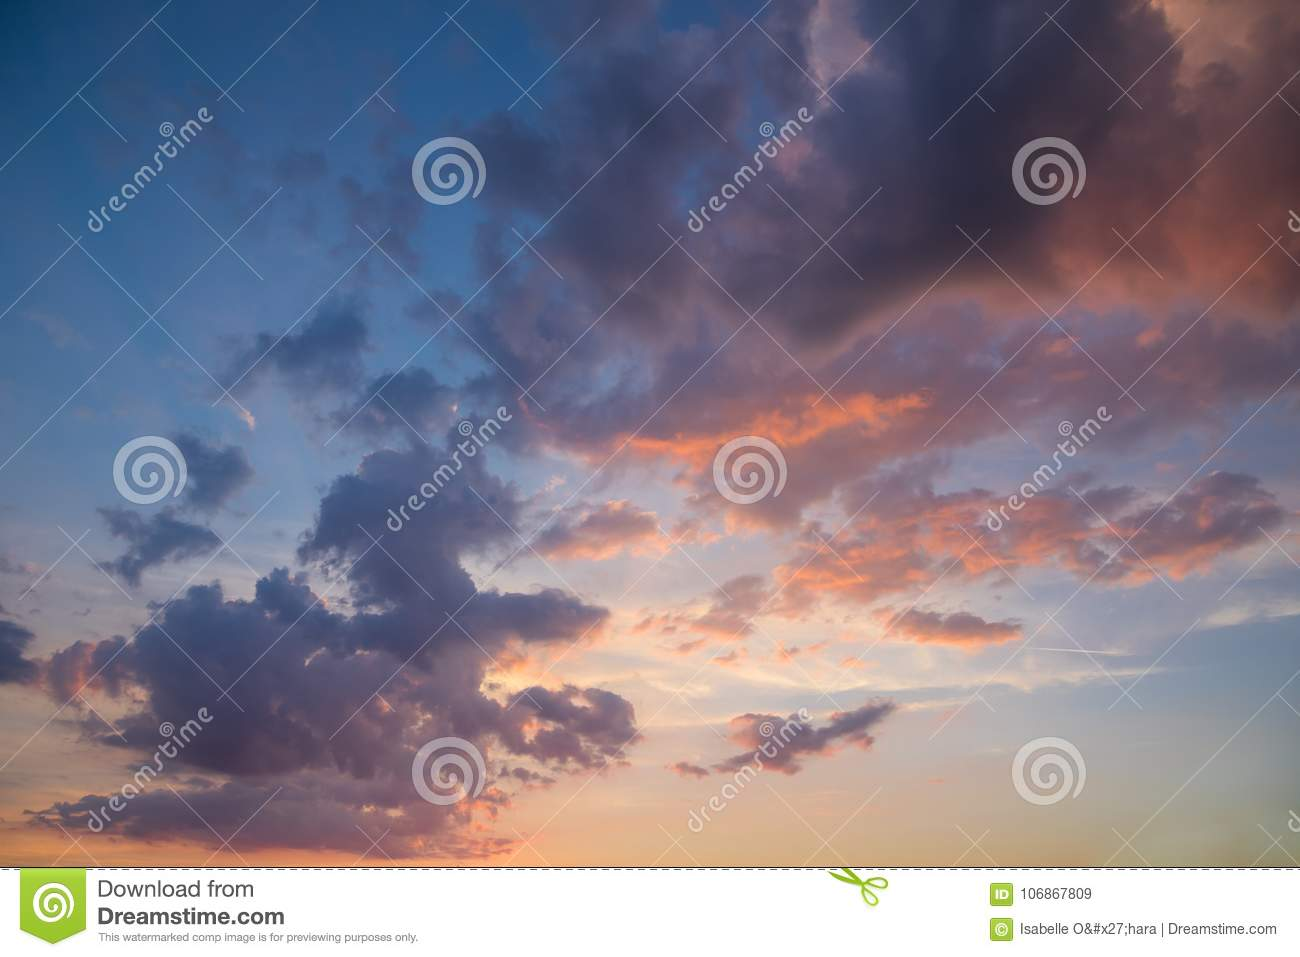 Beautiful Landscape of Pink, Purple and Yellow Clouds in Blue and Yellow Sky at Sunset